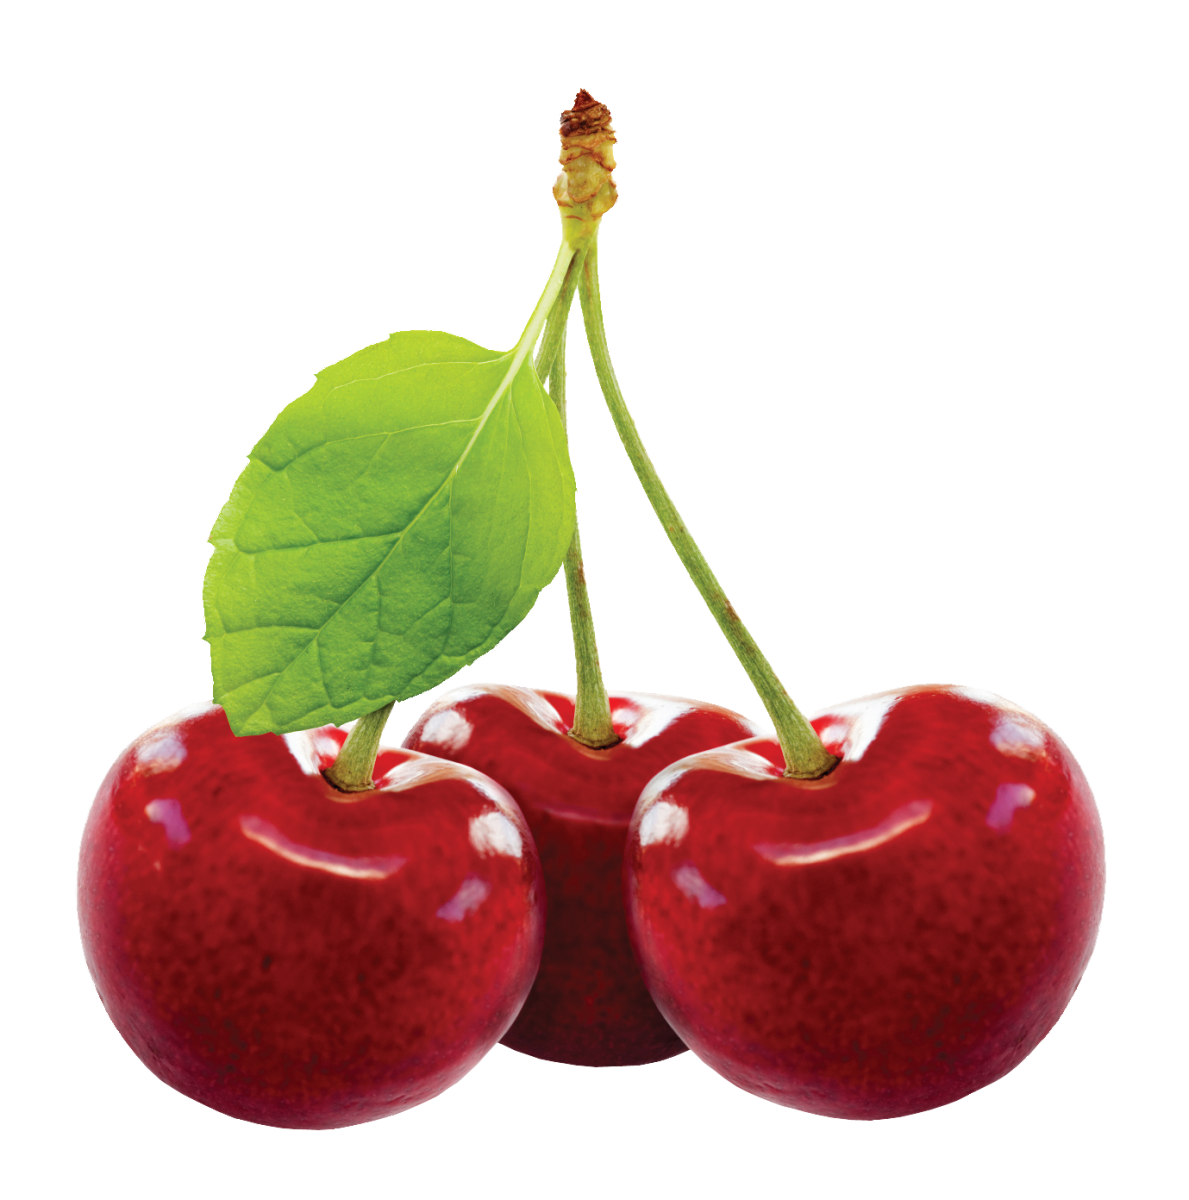 Cherry PNG - 26343